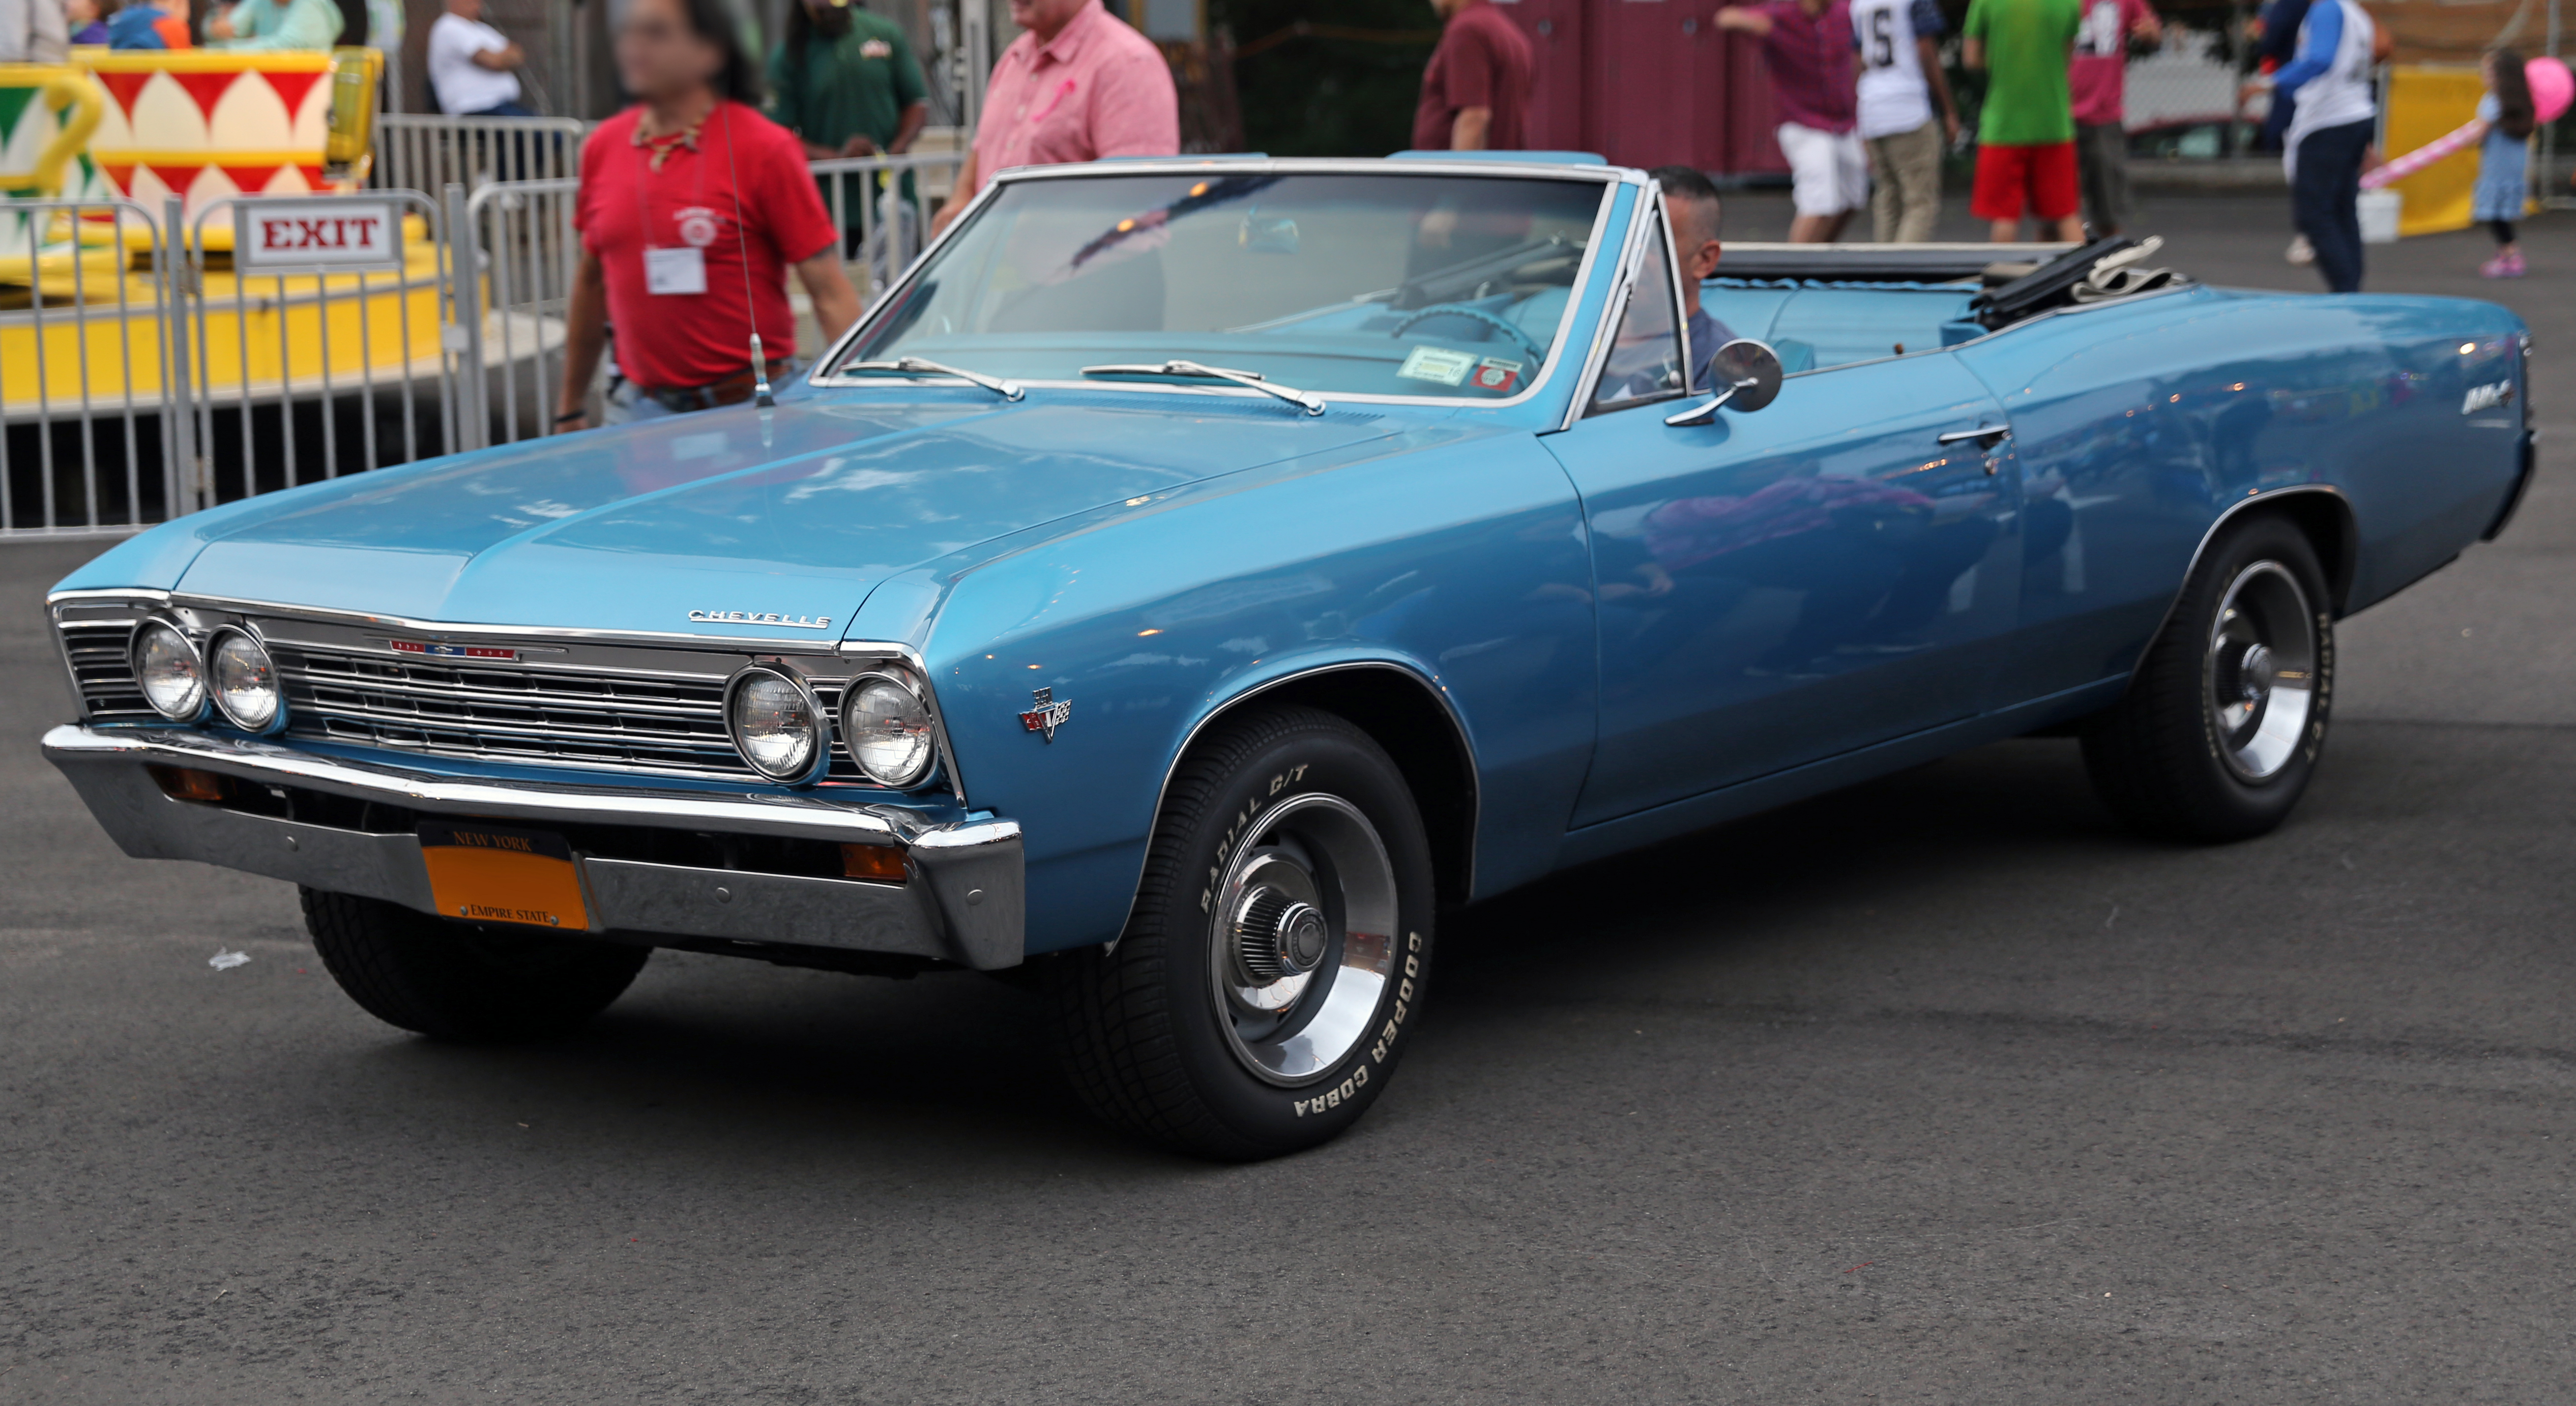 File:1967 Chevrolet Chevelle Malibu SS convertible, St. Gregory.jpg - Wikimedia Commons